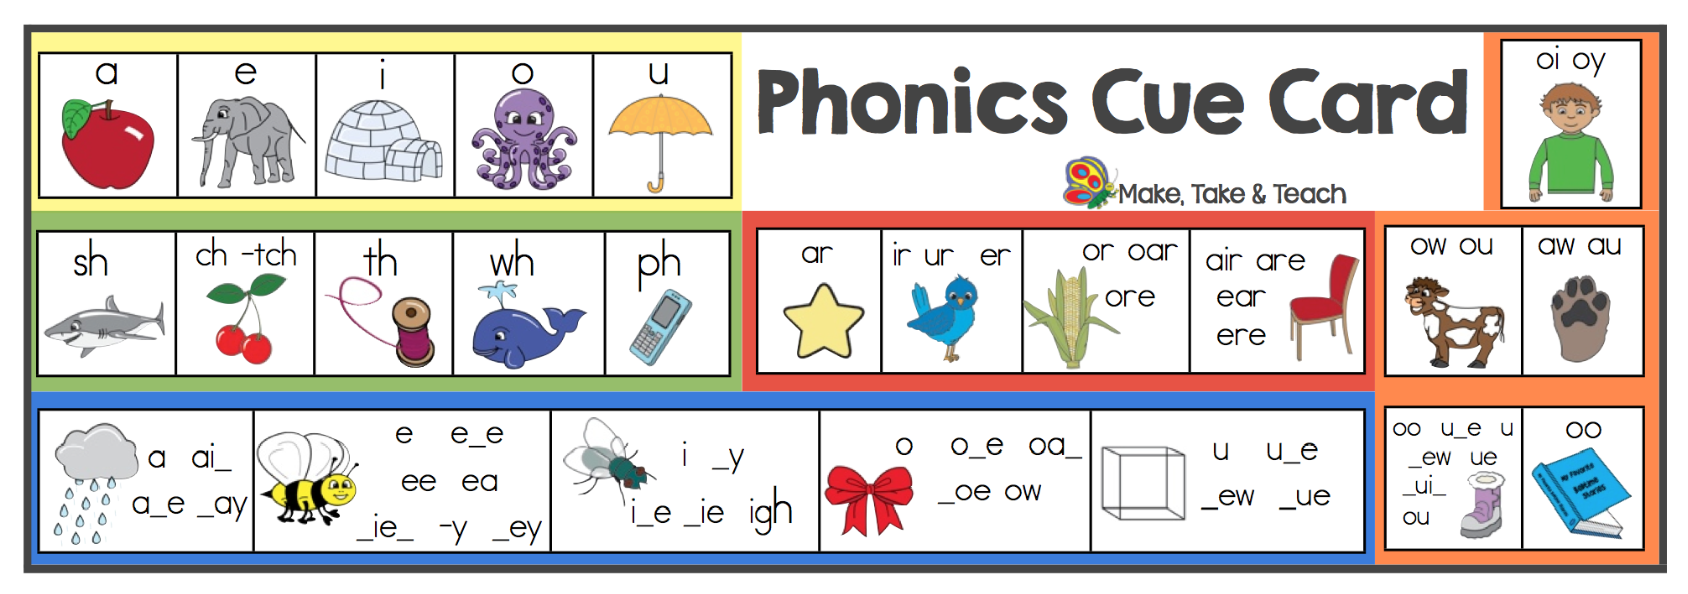 Worksheet Phonic Cards free phonics cue card make take teach card